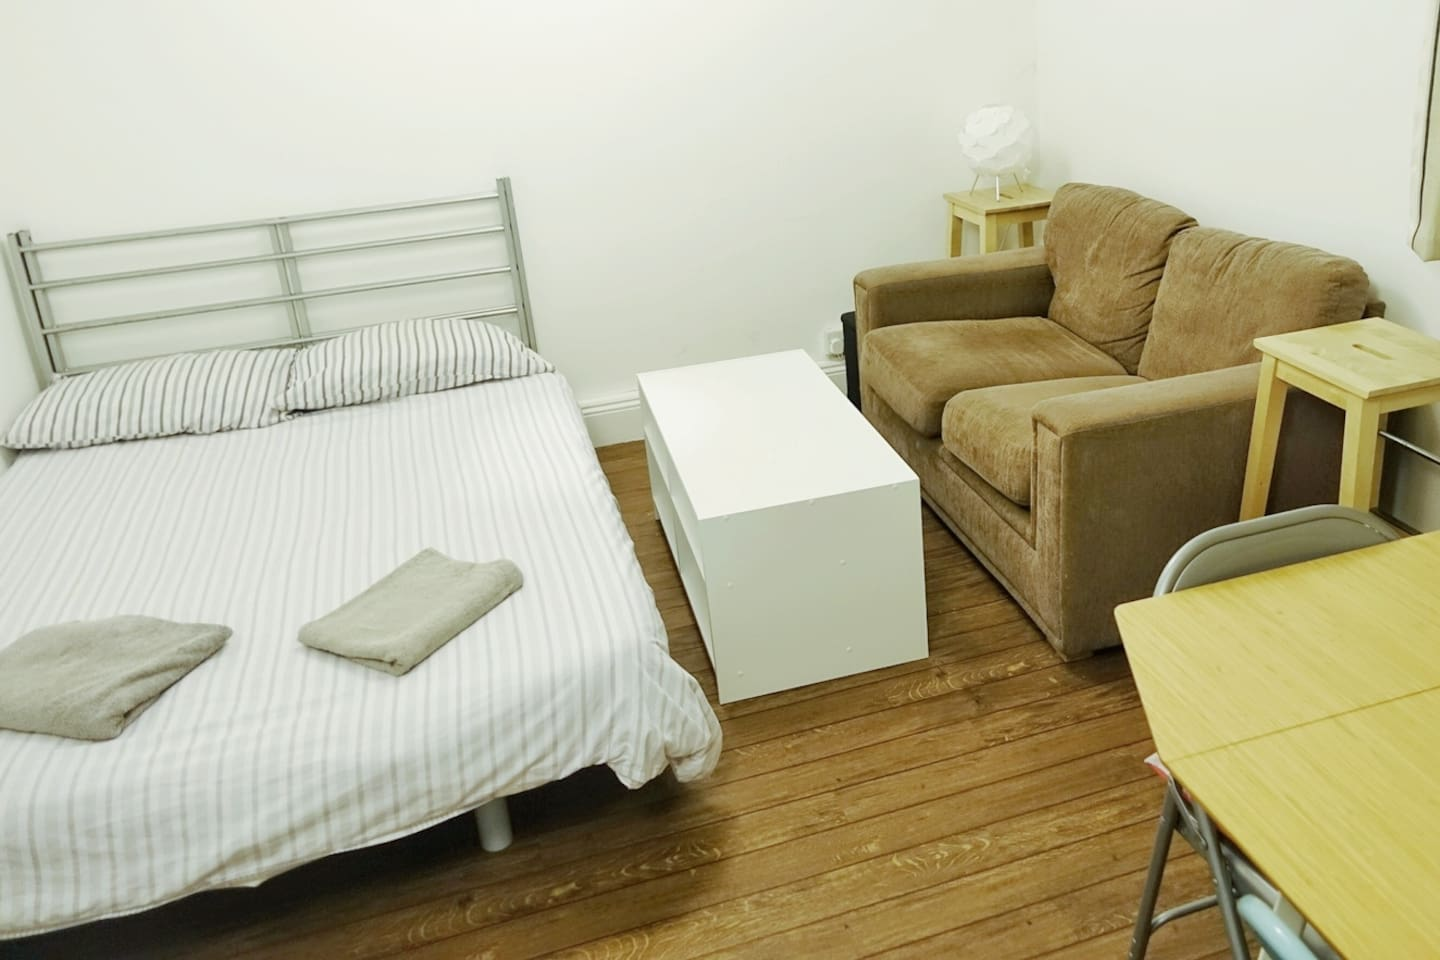 Comfortable double sofa bed and couch.